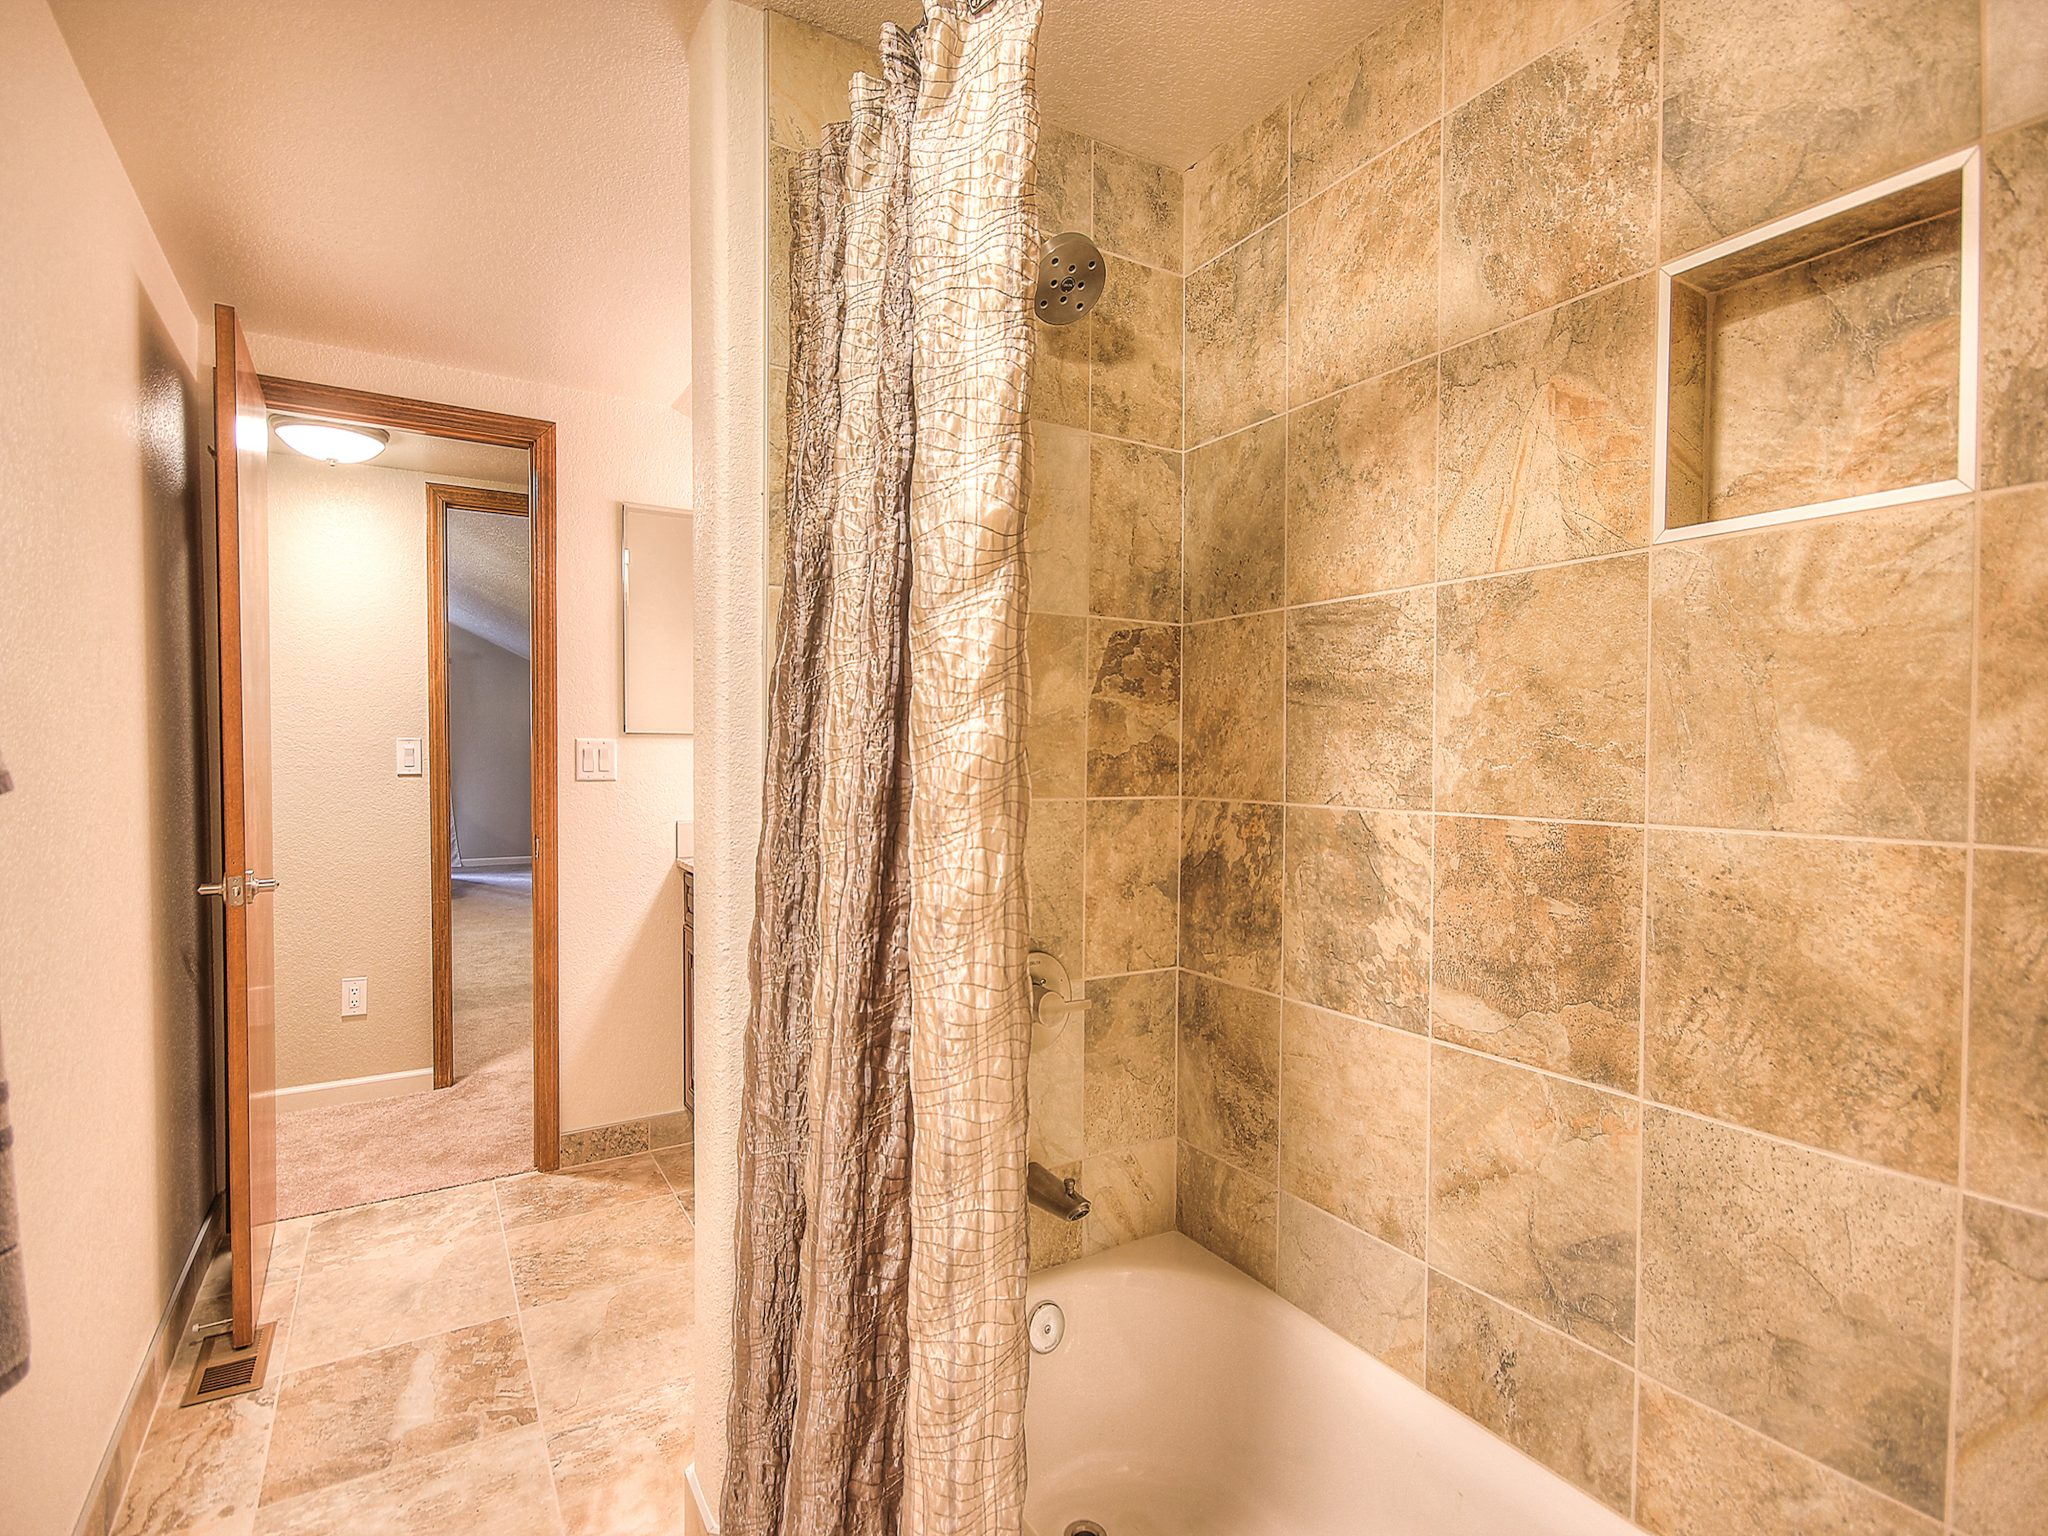 Interior shot of a custom designed bathroom with a tan-tiled shower and wood trimmed doorways